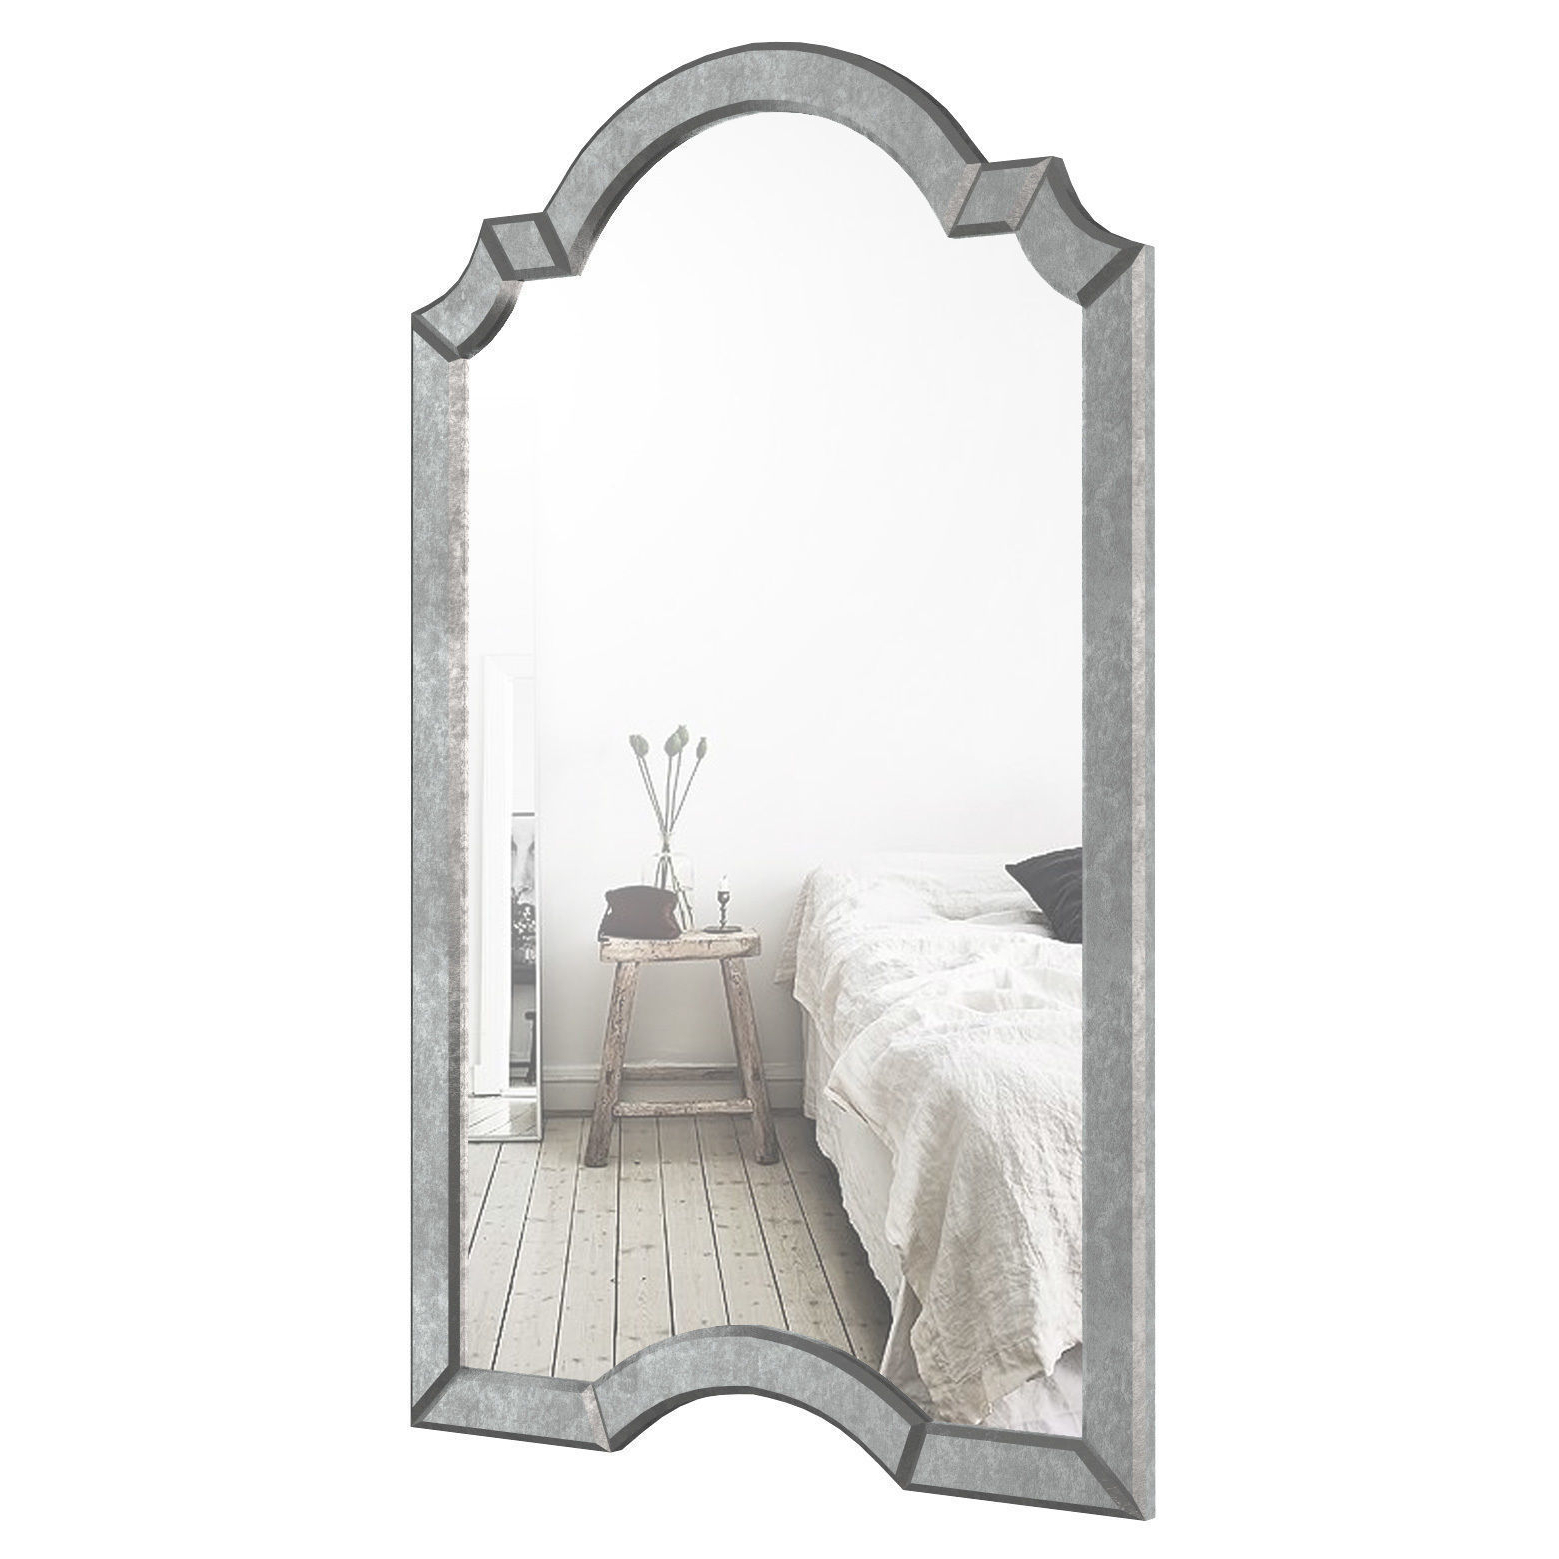 Ekaterina Arch – Crowned Top Wall Mirror Wlao (View 2 of 20)